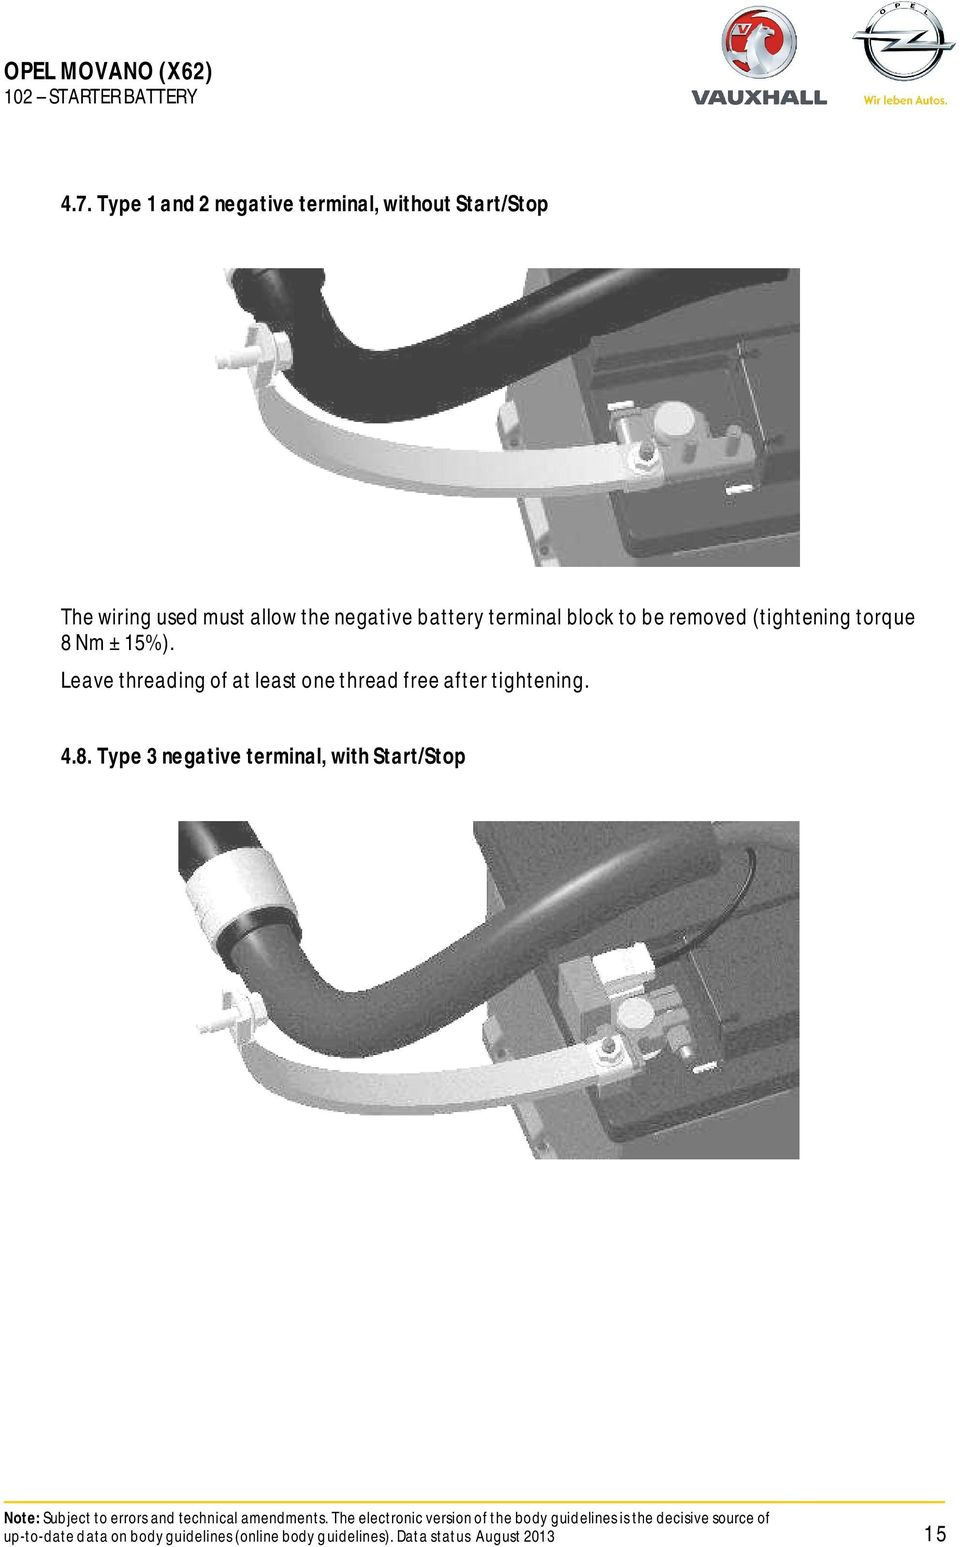 Conversion guideline opel movano x62 pdf battery terminal block to be removed tightening torque 8 nm asfbconference2016 Images